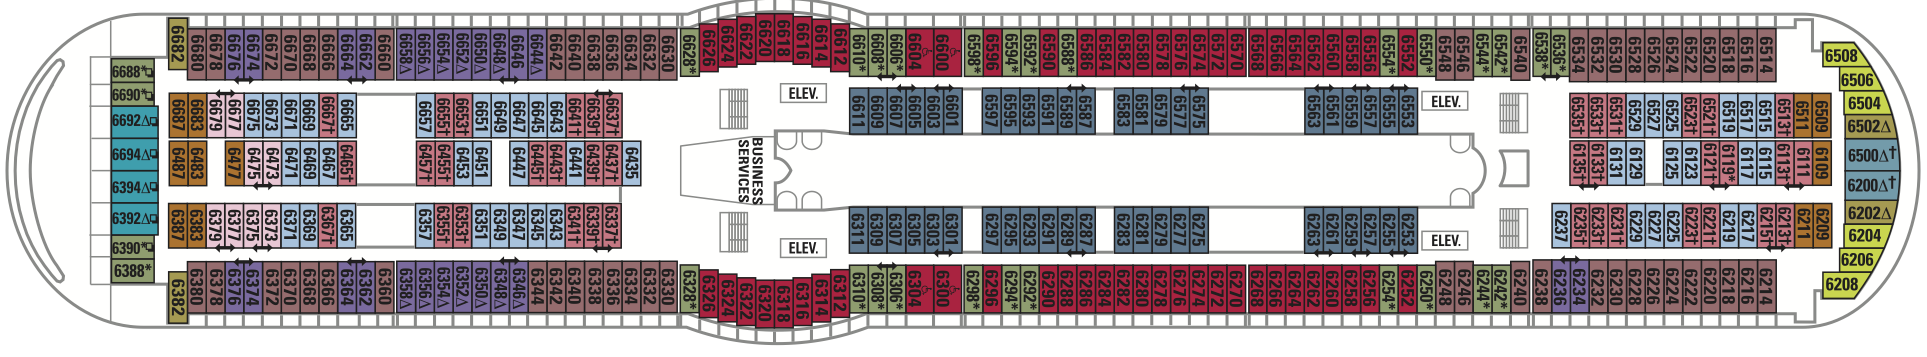 Adventure Of The Seas Deck Plans - The Best Sea Of 2018